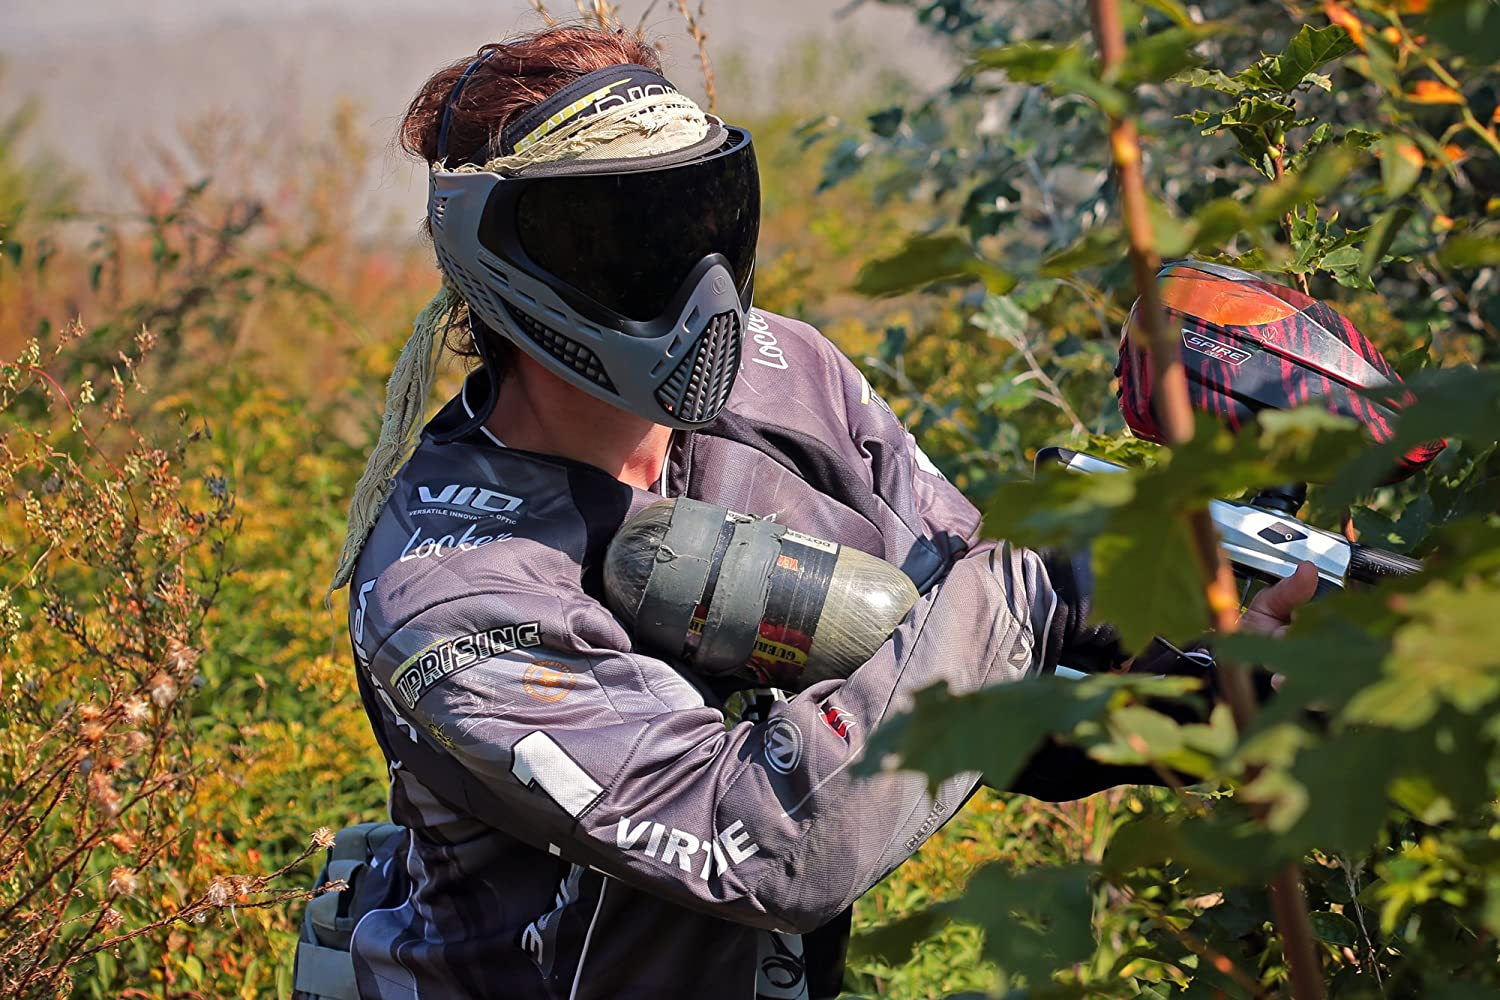 Best Paintball Mask for the Money Reviews for 2021